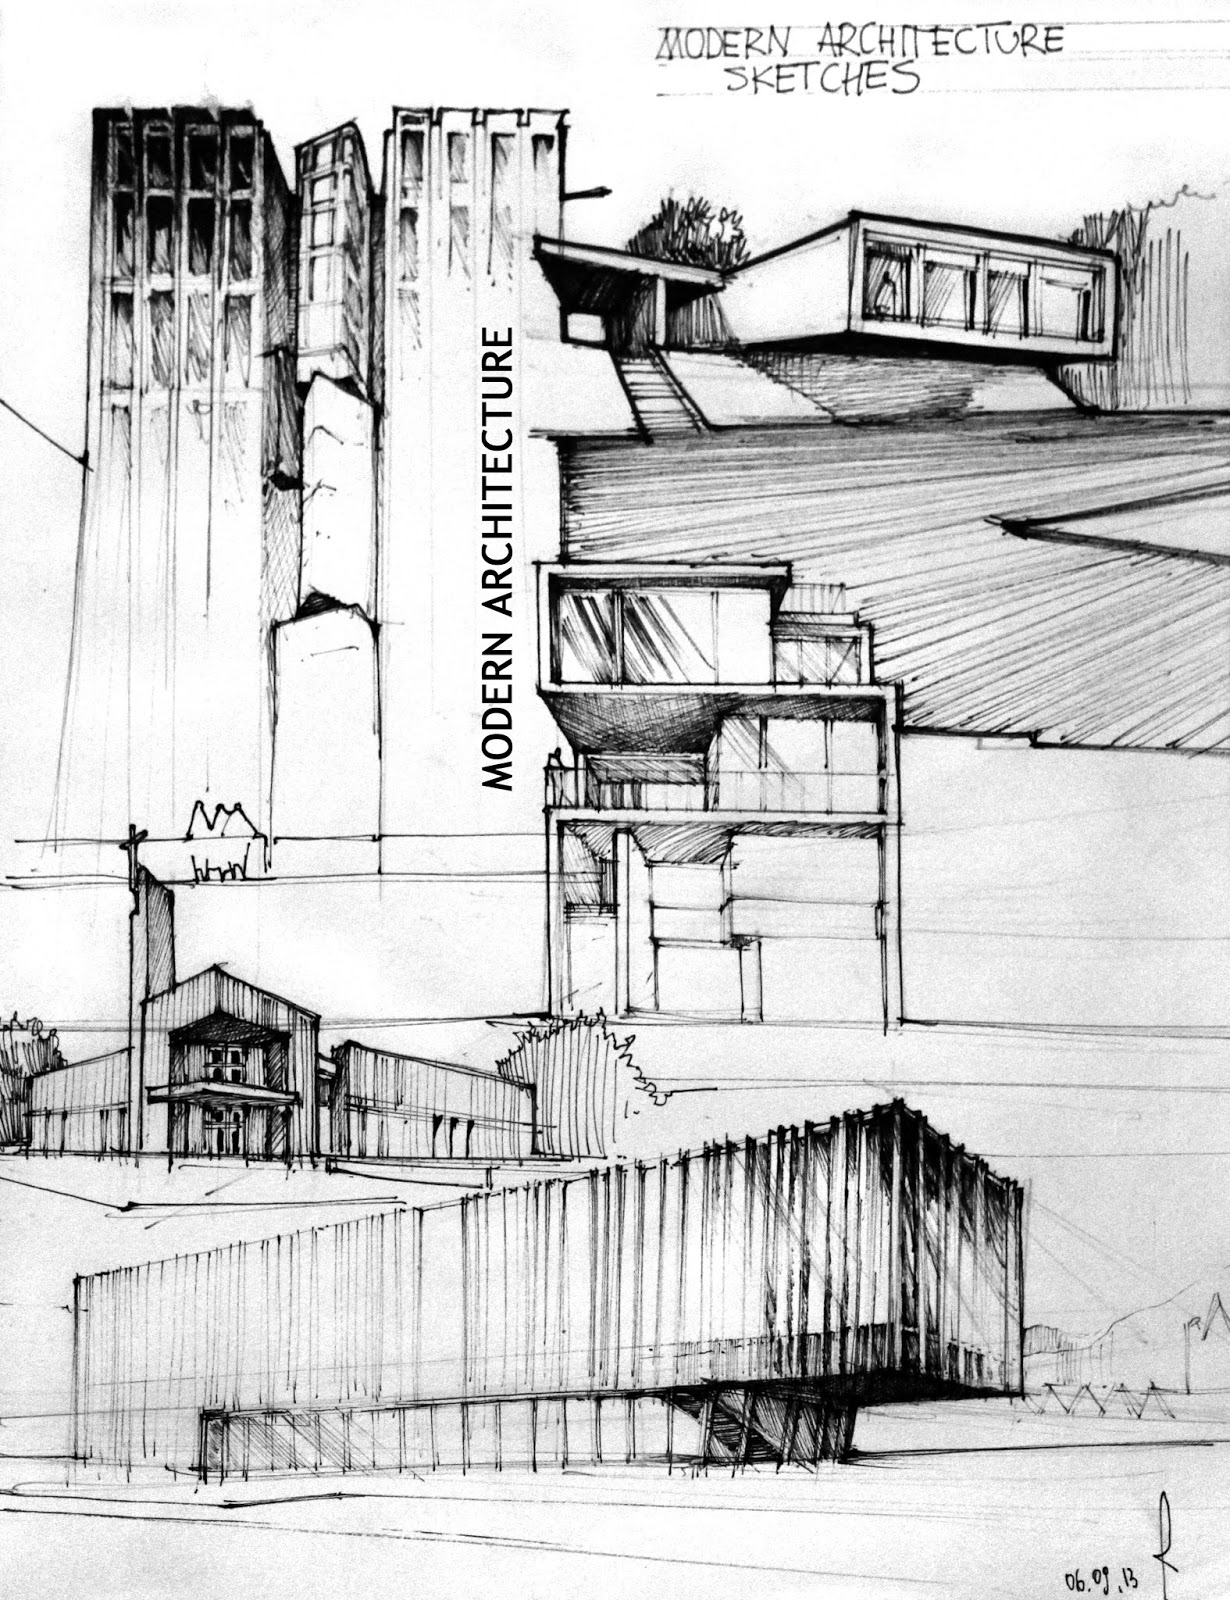 Modern architecture sketches artur st pniak gallery for Architecture house drawing